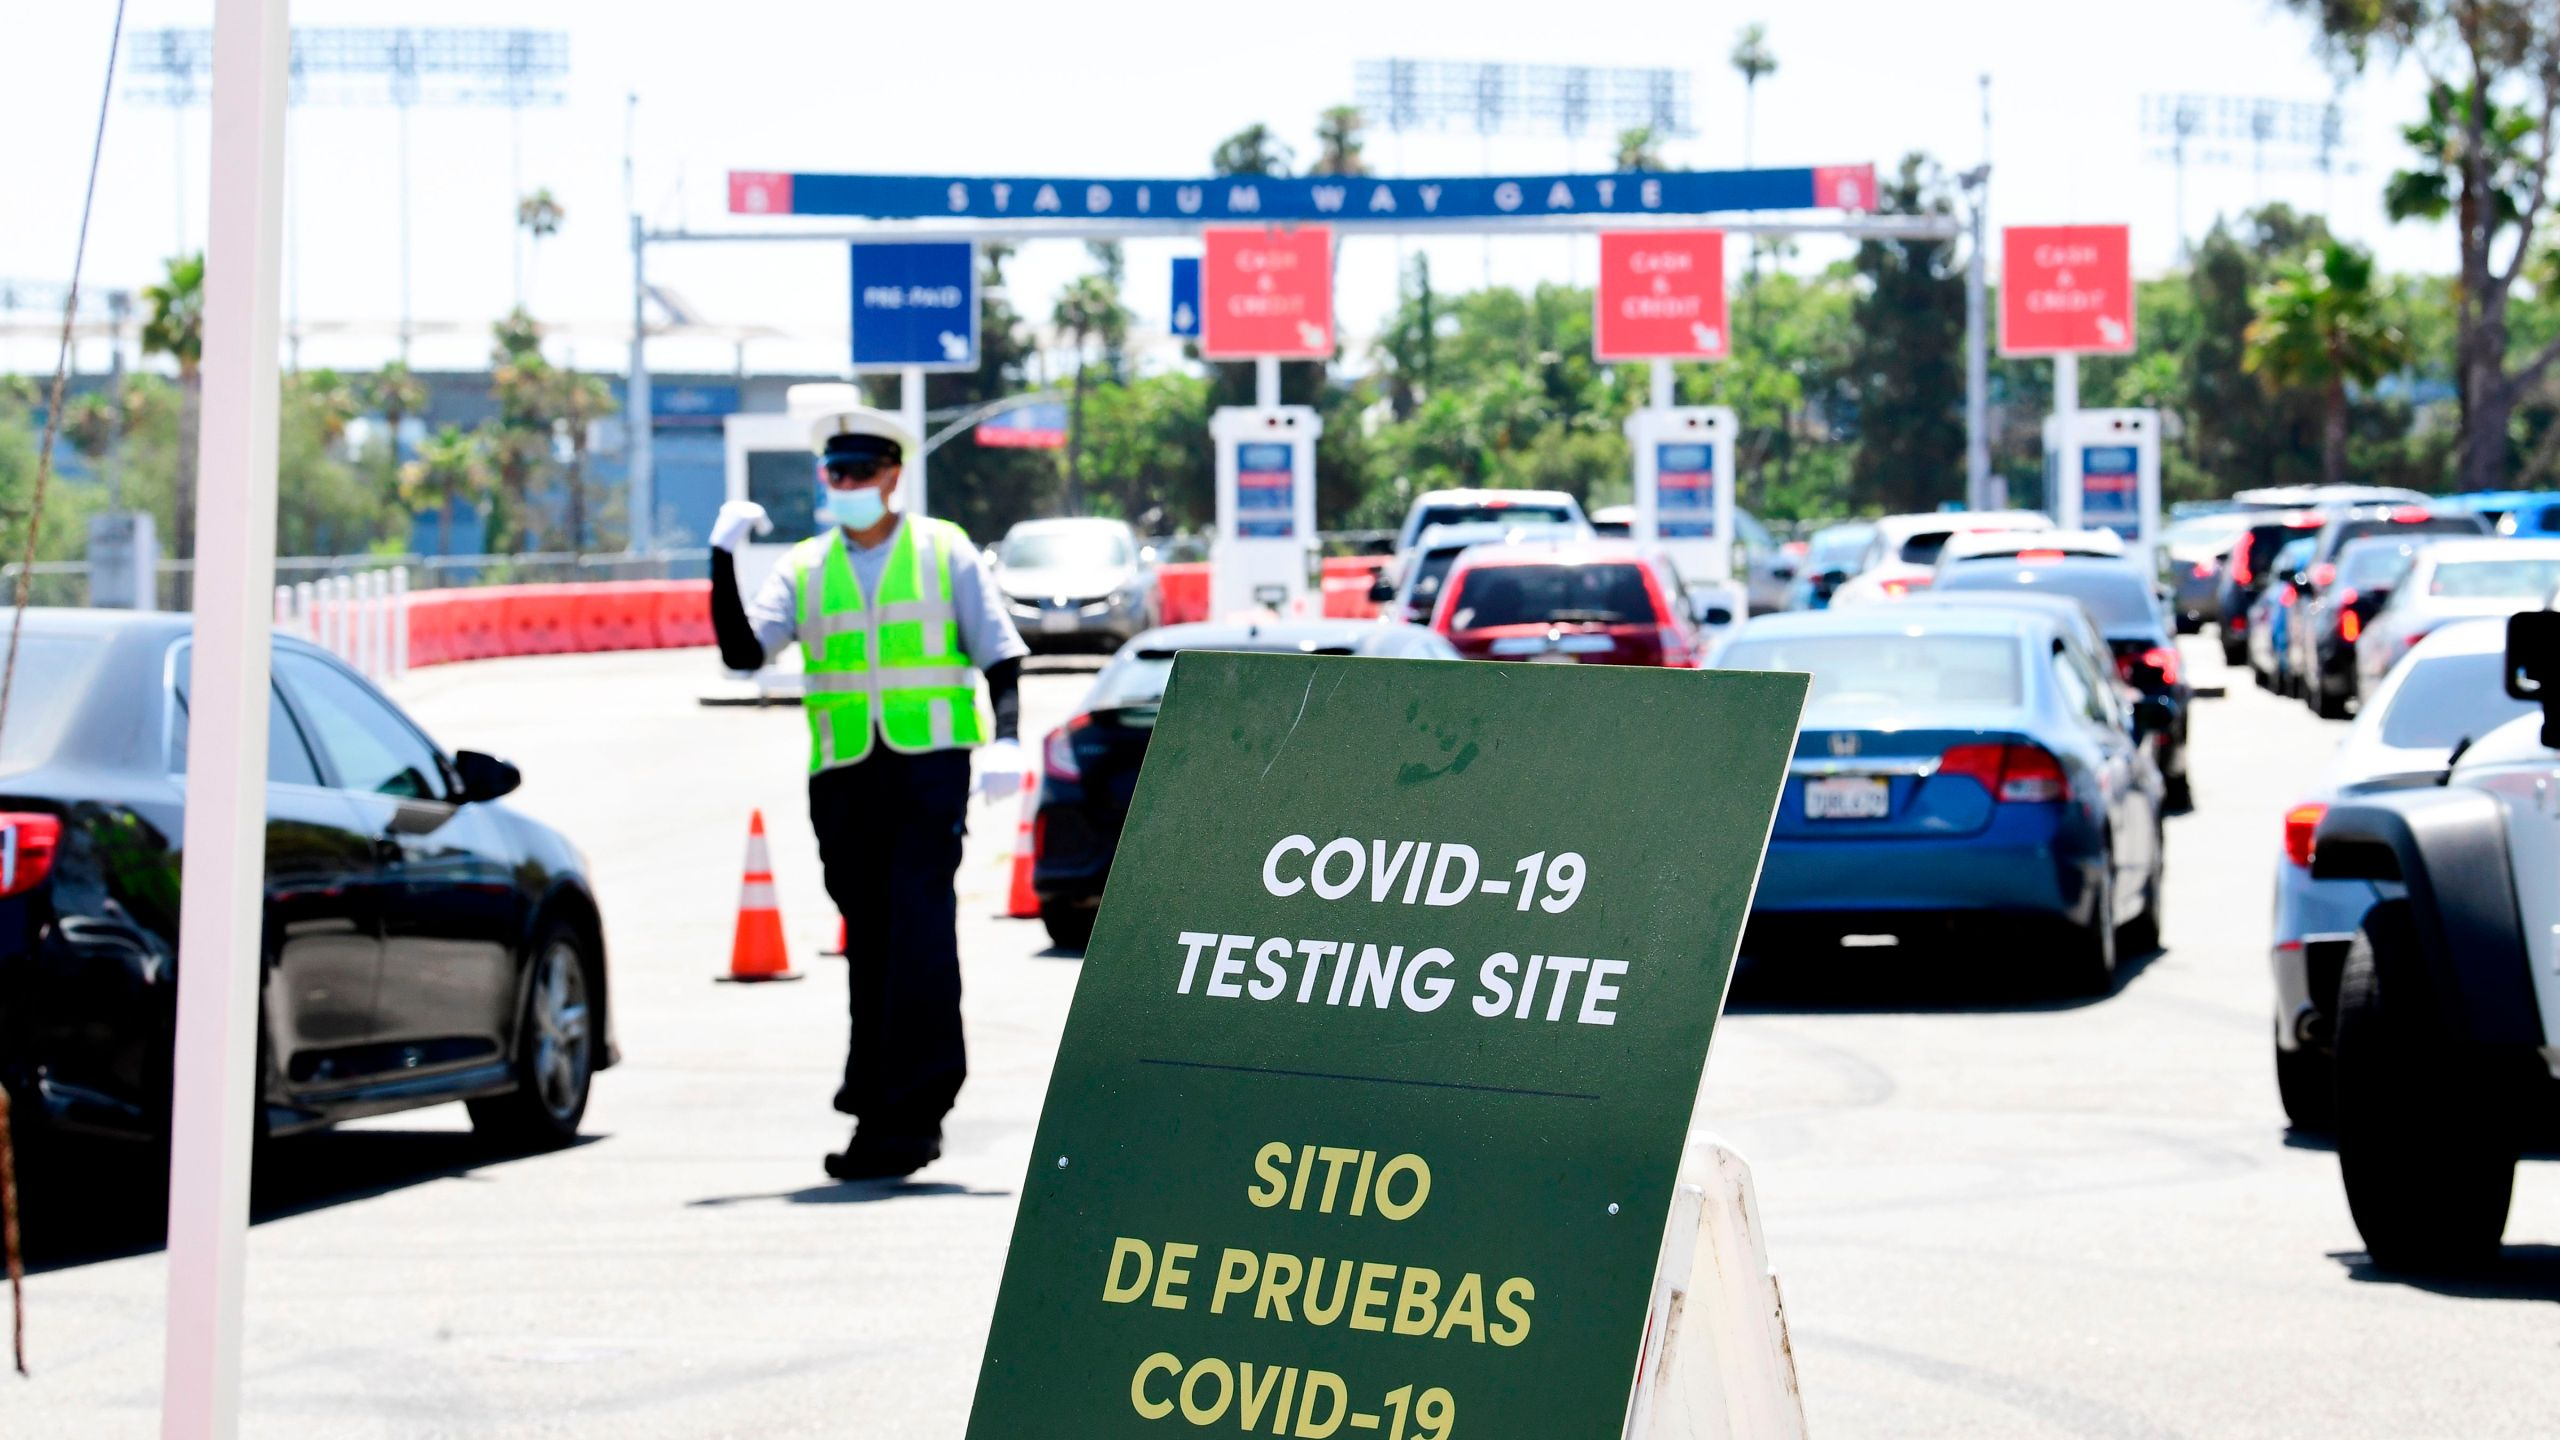 Traffic is directed at Dodger Stadium as people arrive for coronavirus testing on June 30, 2020, in Los Angeles. (FREDERIC J. BROWN/AFP via Getty Images)